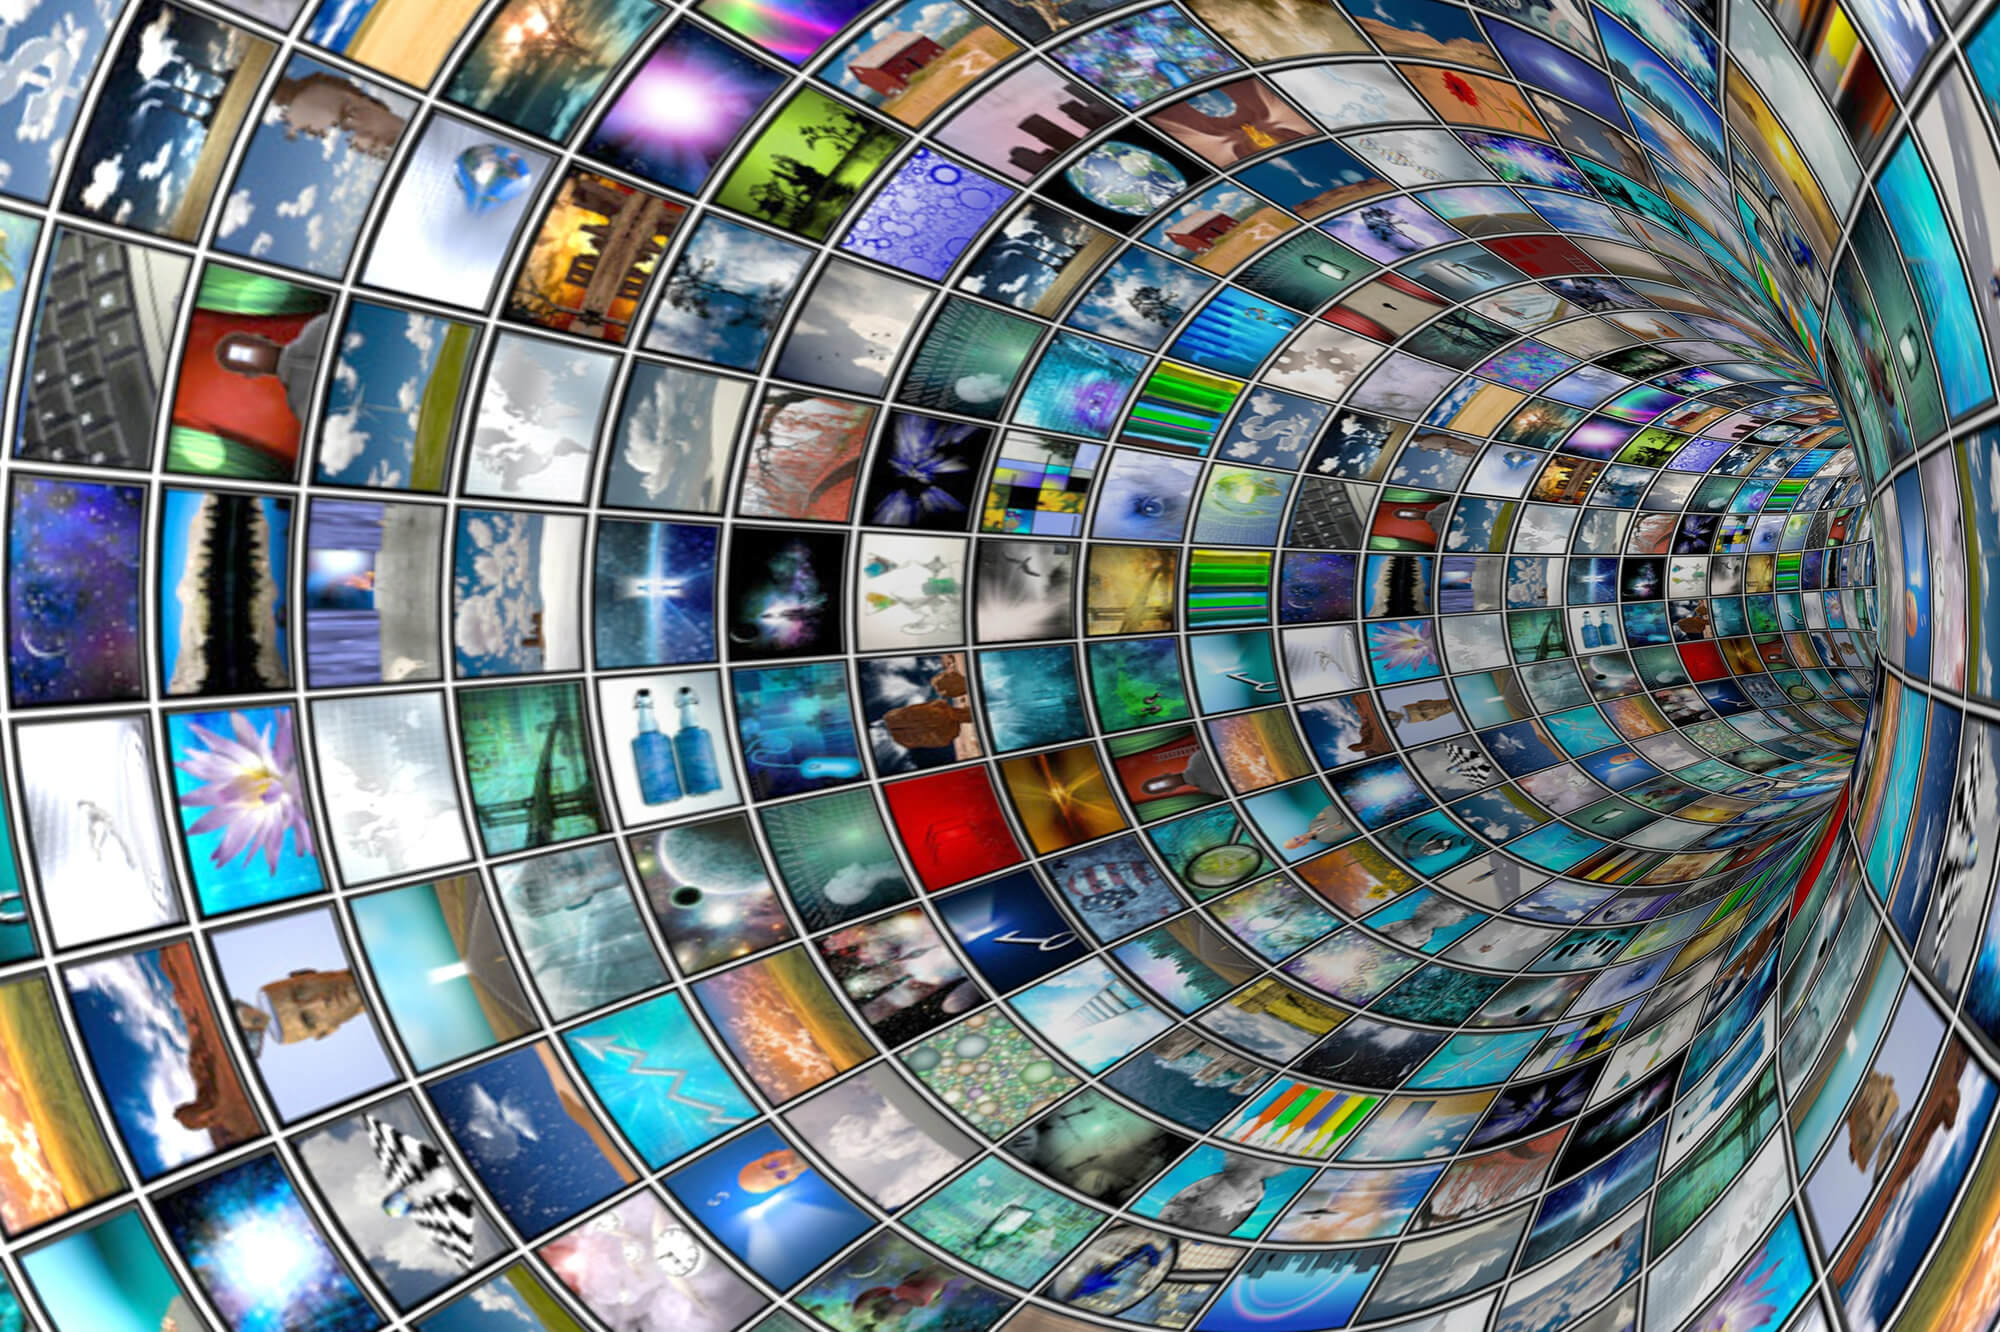 Digital Media Hasn't Crushed Traditional. But the Power Has Shifted.